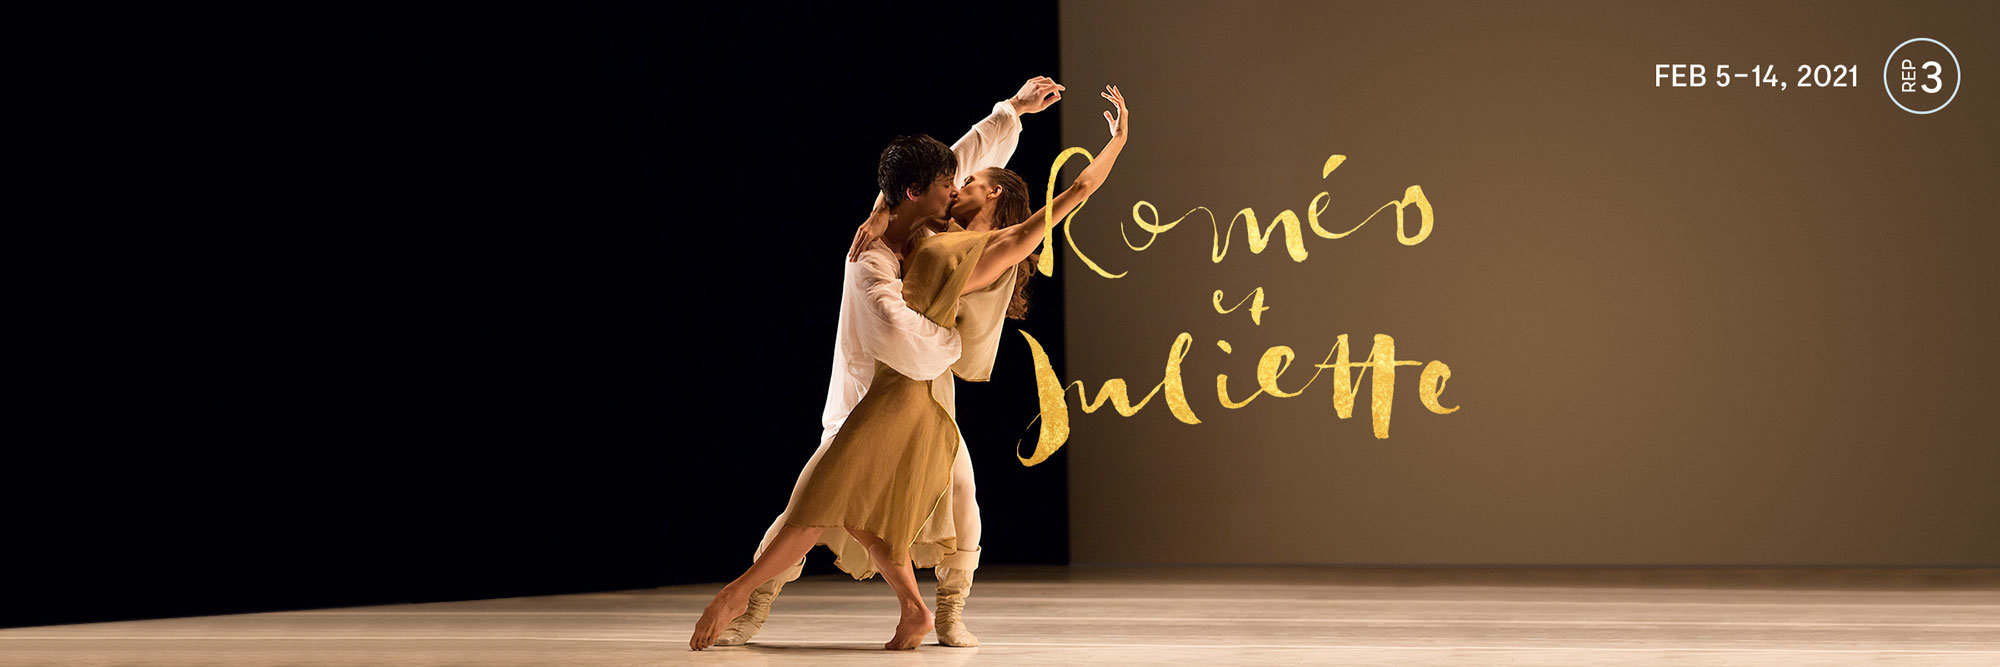 Romeo et Juliette. February 5 - 14, 2021 at Pacific Northwest Ballet. Jean-Christophe Maillot infuses Shakespeare's classic Romeo and Juliet